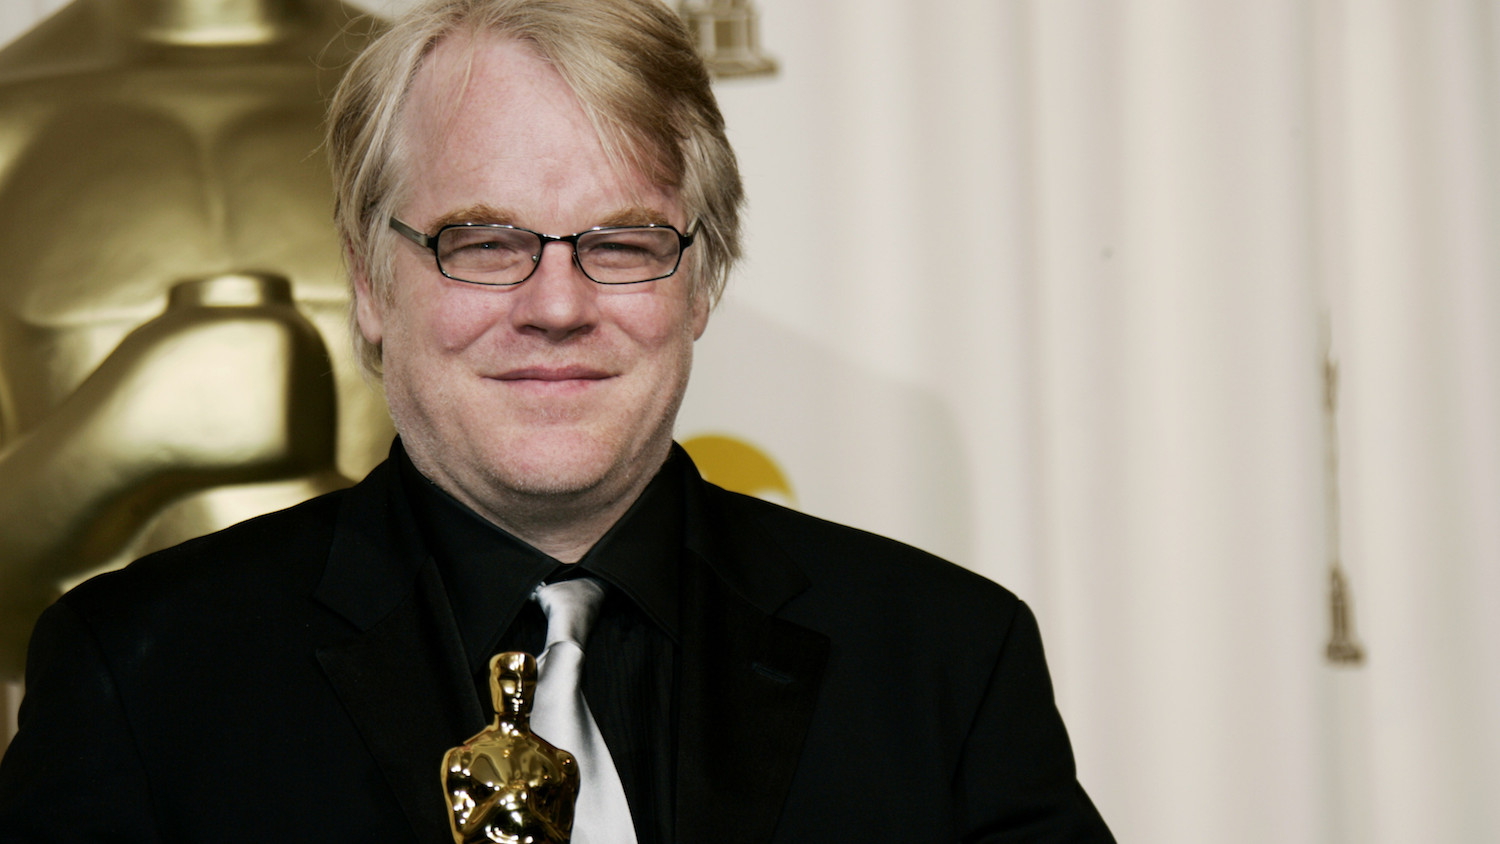 Philip Seymour Hoffman's 5 Best Movie Performances